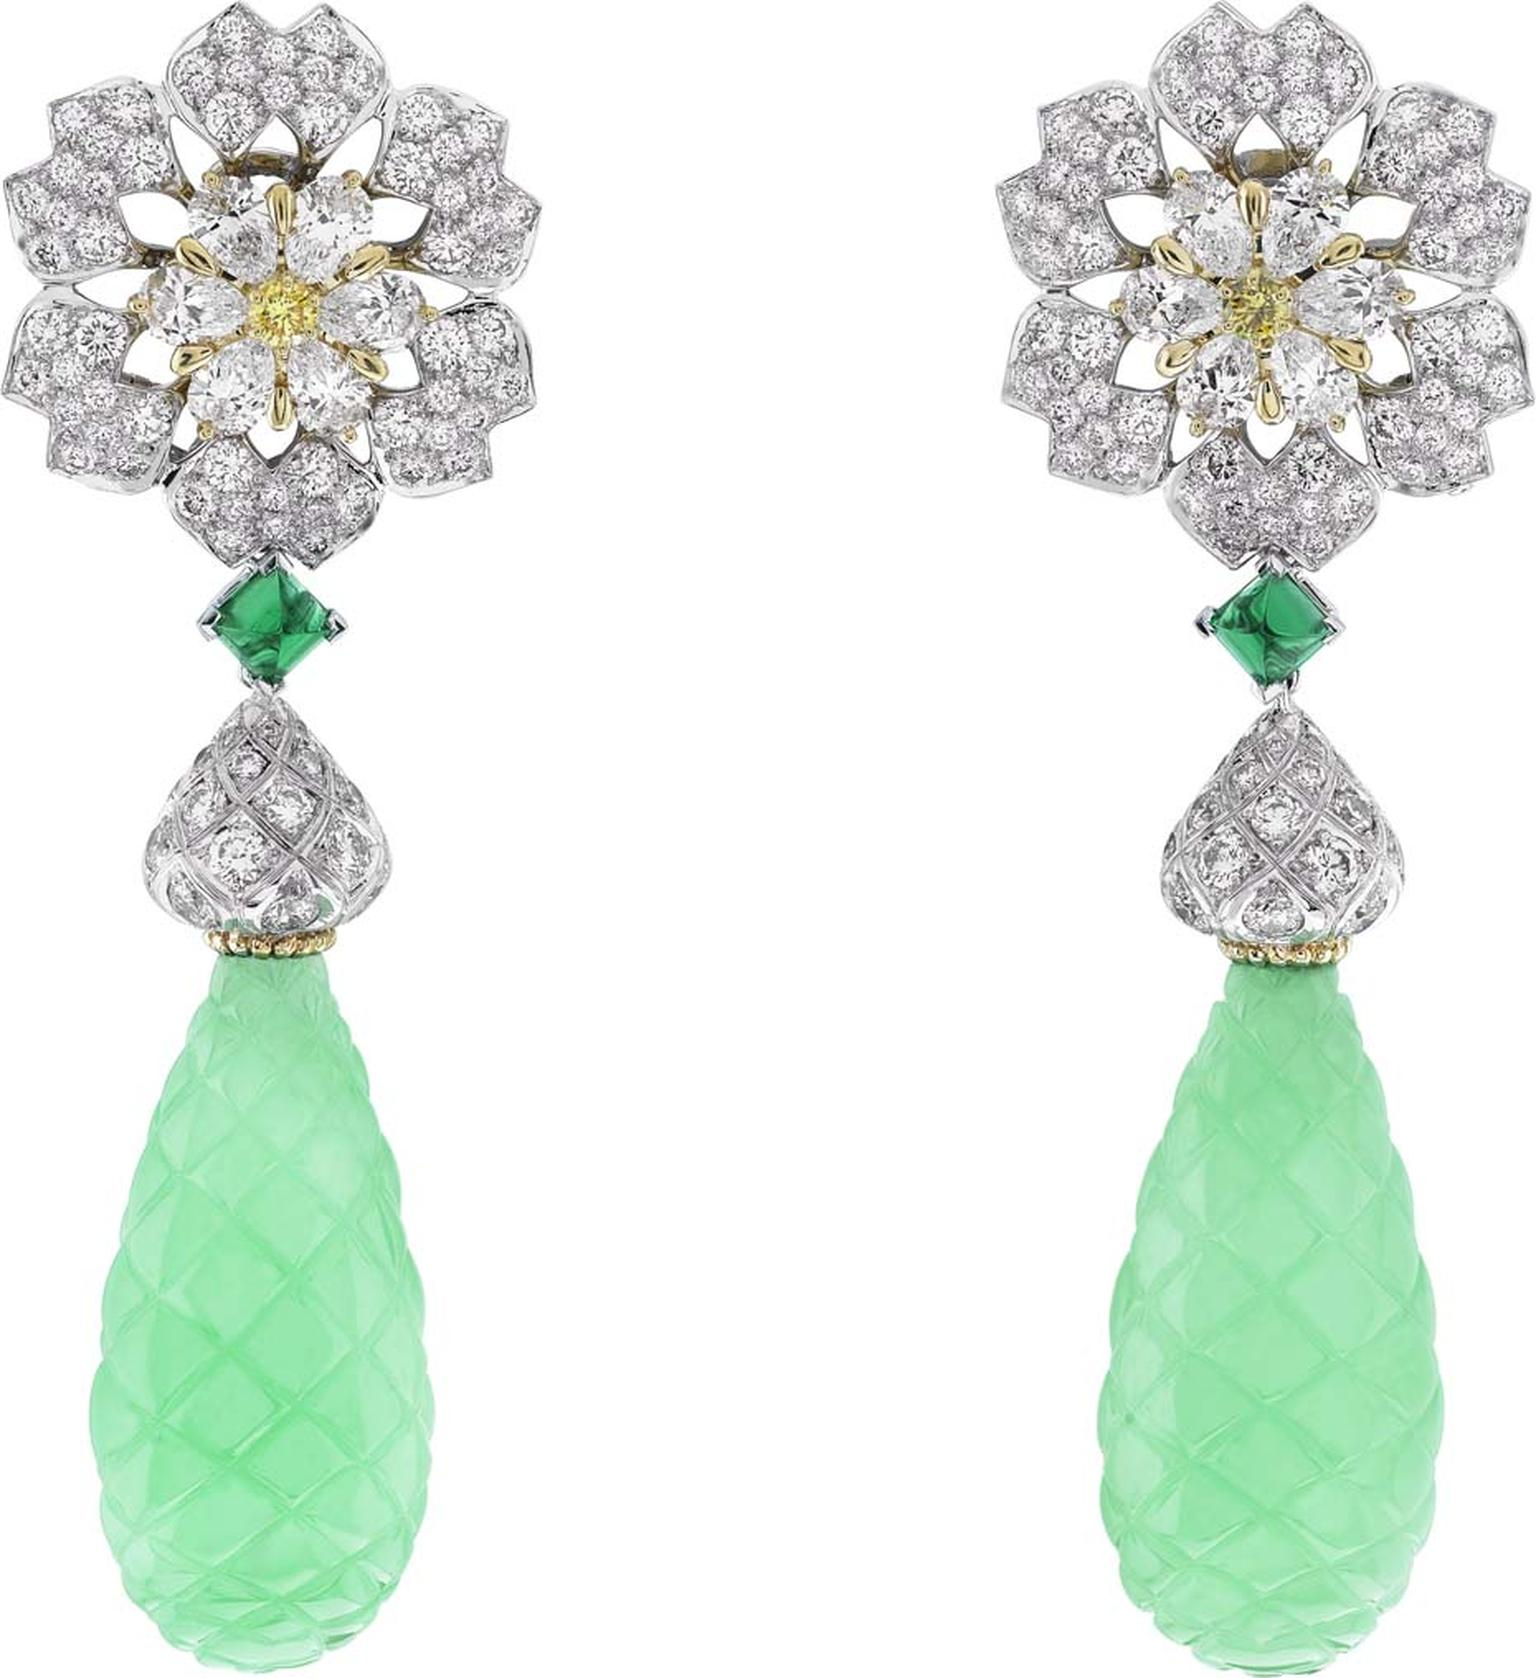 Van Cleef & Arpels Peau d'Âne collection Enchanted Forest white gold drop earrings with a white and yellow diamond flower motif above emerald cabochons and two carved chrysophrase.